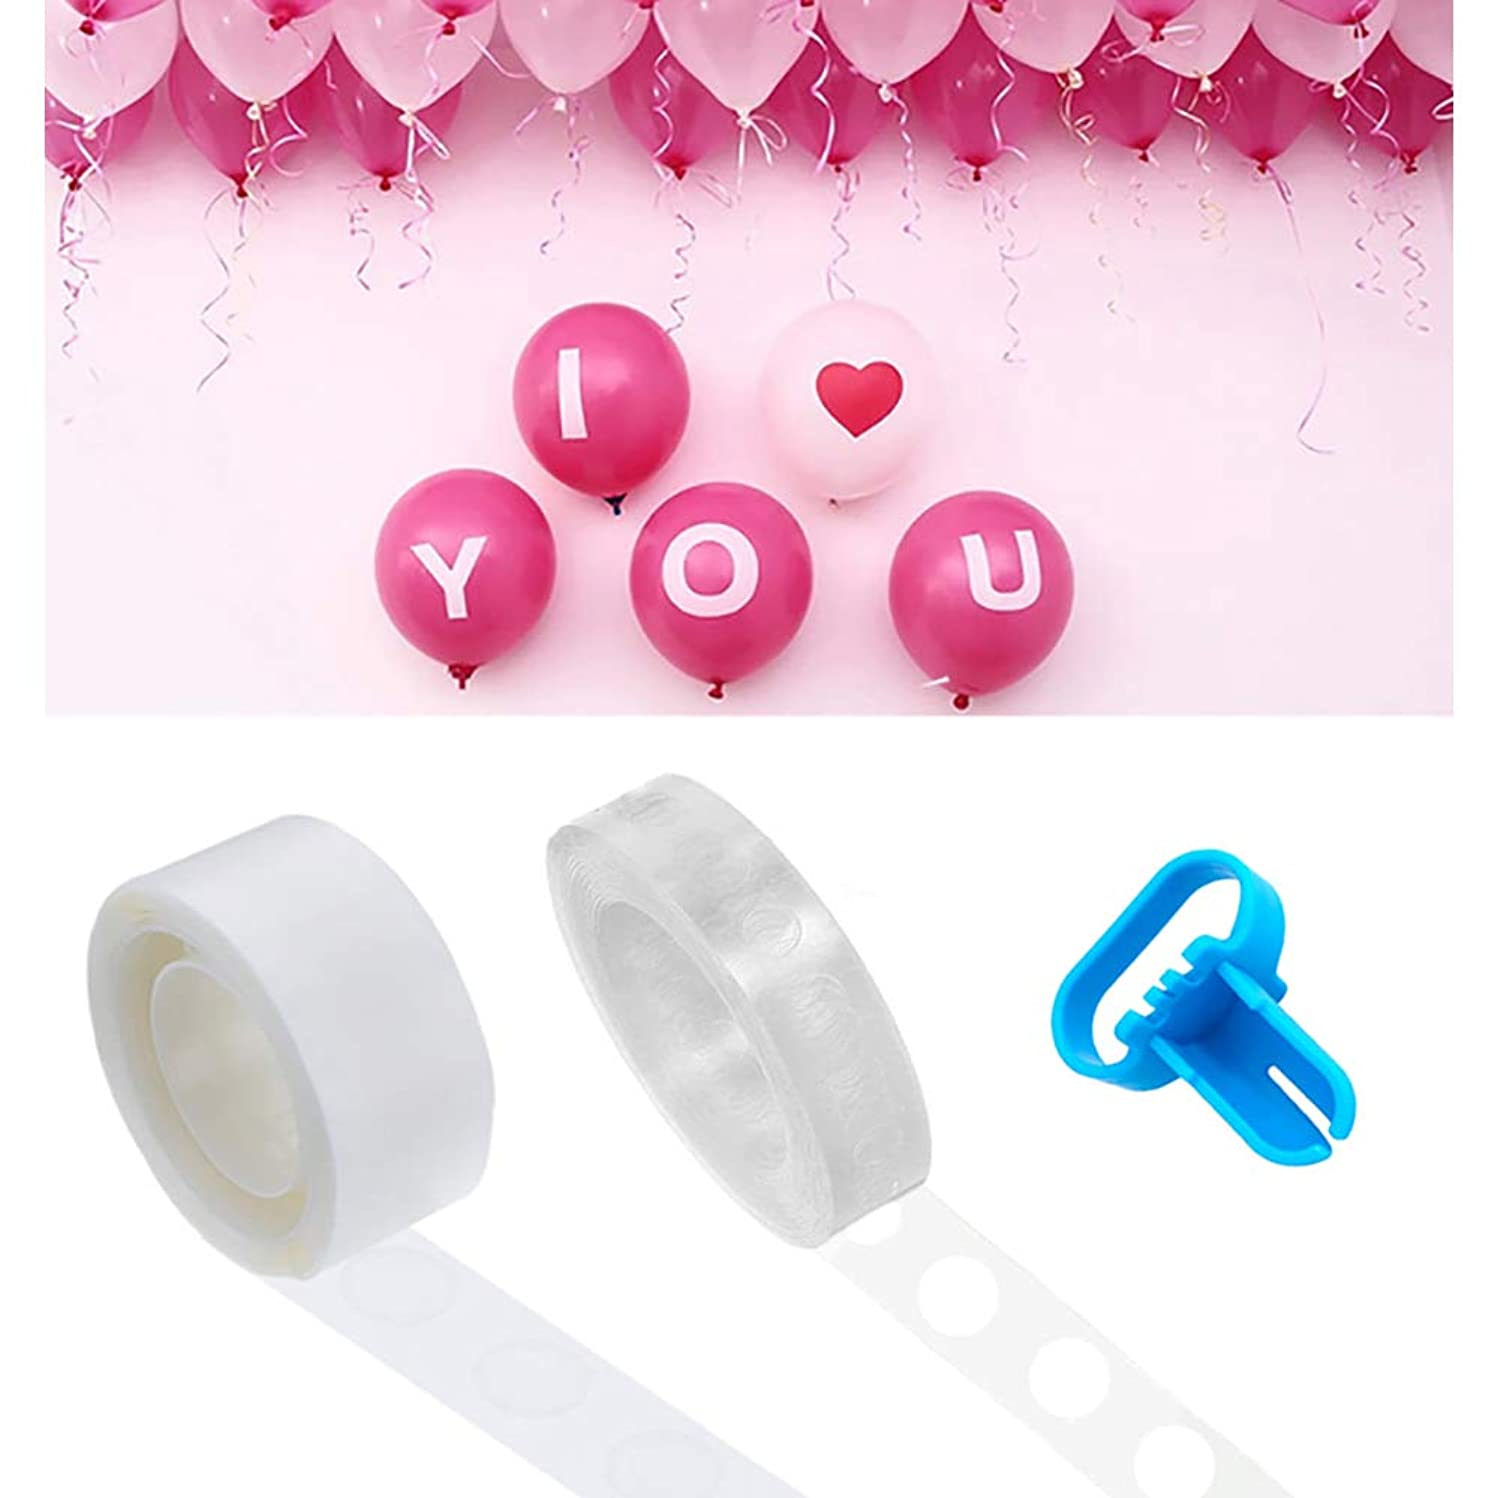 Kalolary Balloon Arch Garland Decorating Strip Kit - 50 Ft Reusable Balloon Tape Strip, 100 Removable Glue Sticky Dots, Tying Tool, Supplies Balloon Time Birthday, Part, Wedding, Events